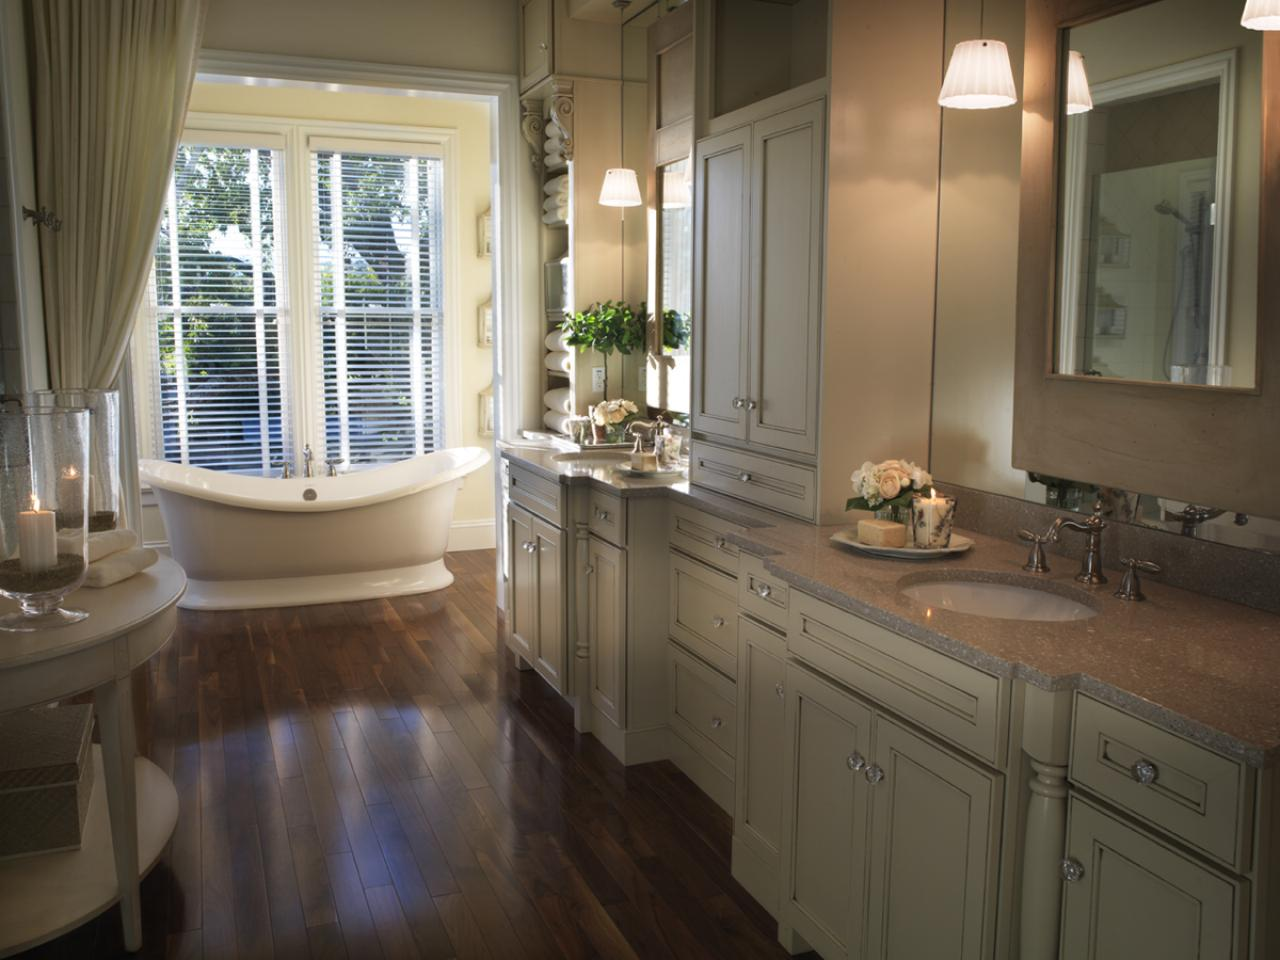 Small Bathtub Ideas And Options: Pictures & Tips From HGTV